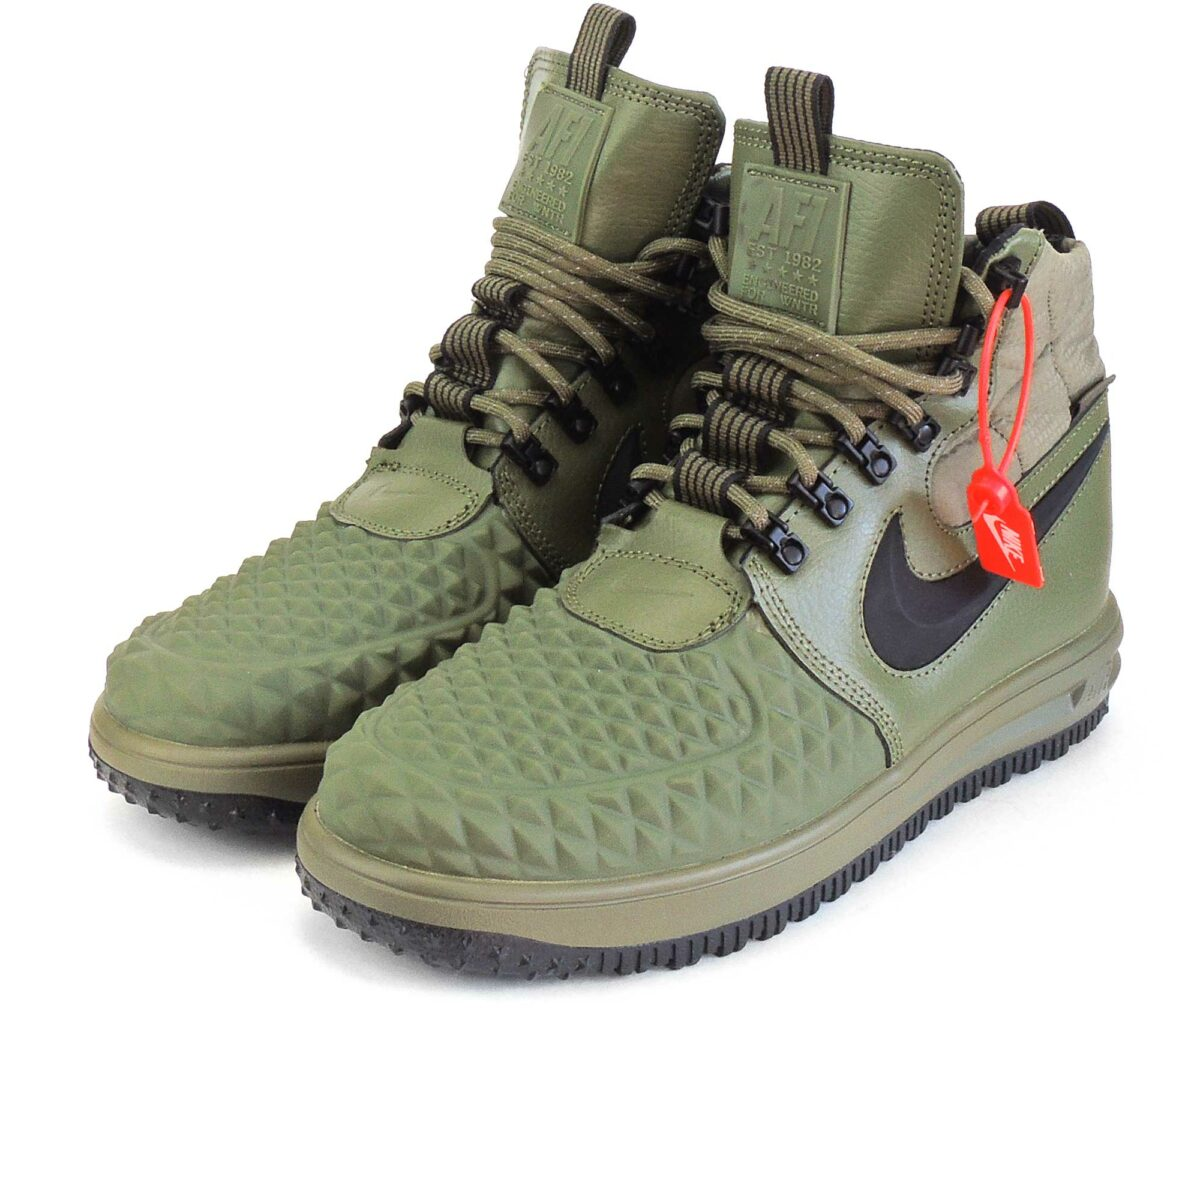 nike air force 1 lf1 duckboot 17gs olive 922807_202 купить